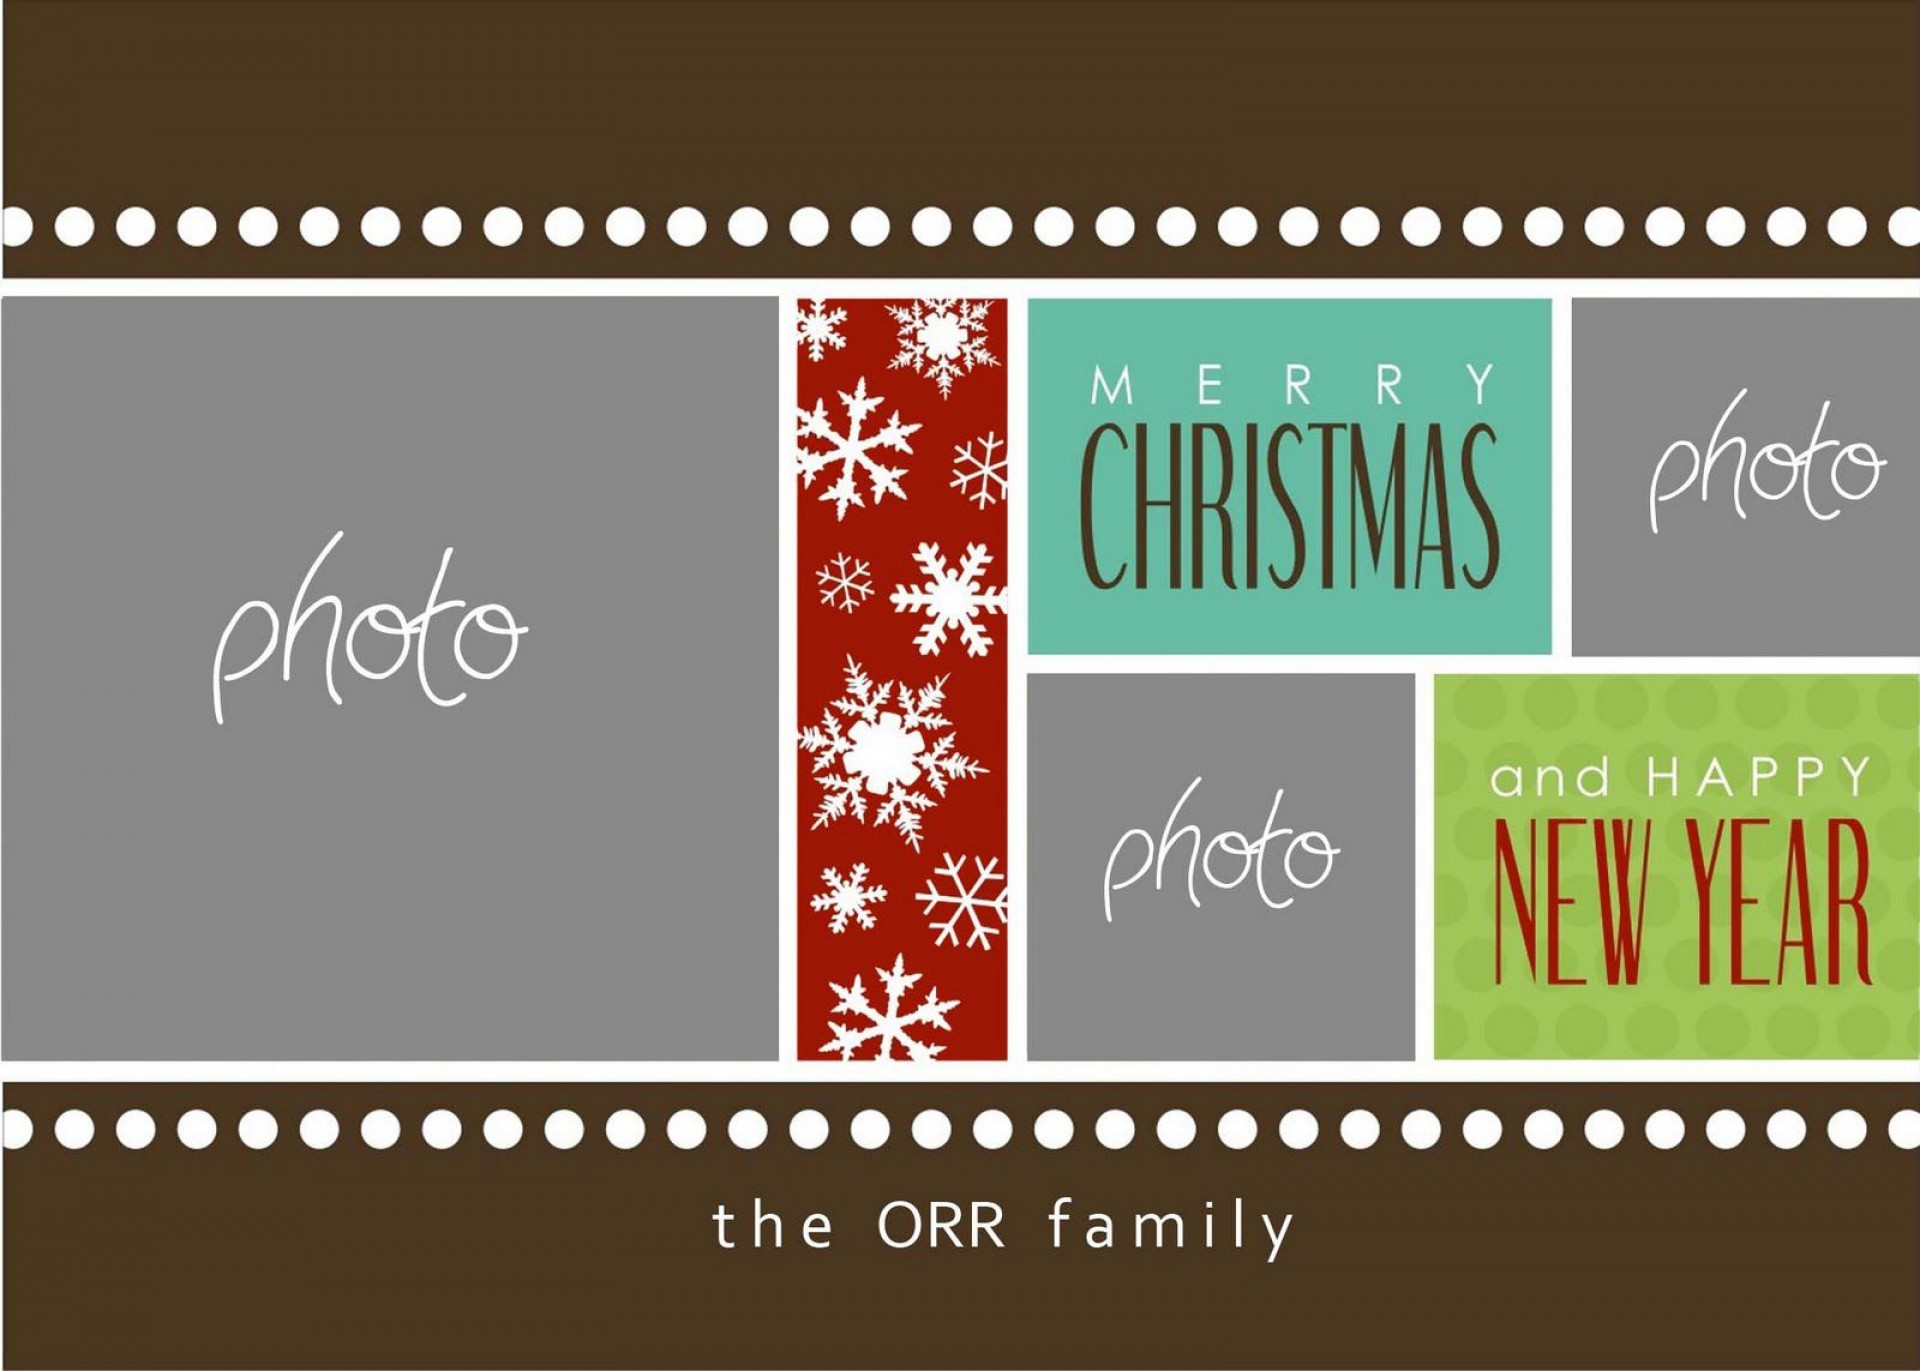 010 Imposing Holiday Card Template Free Image  Christma Word Recipe Editable Microsoft1920